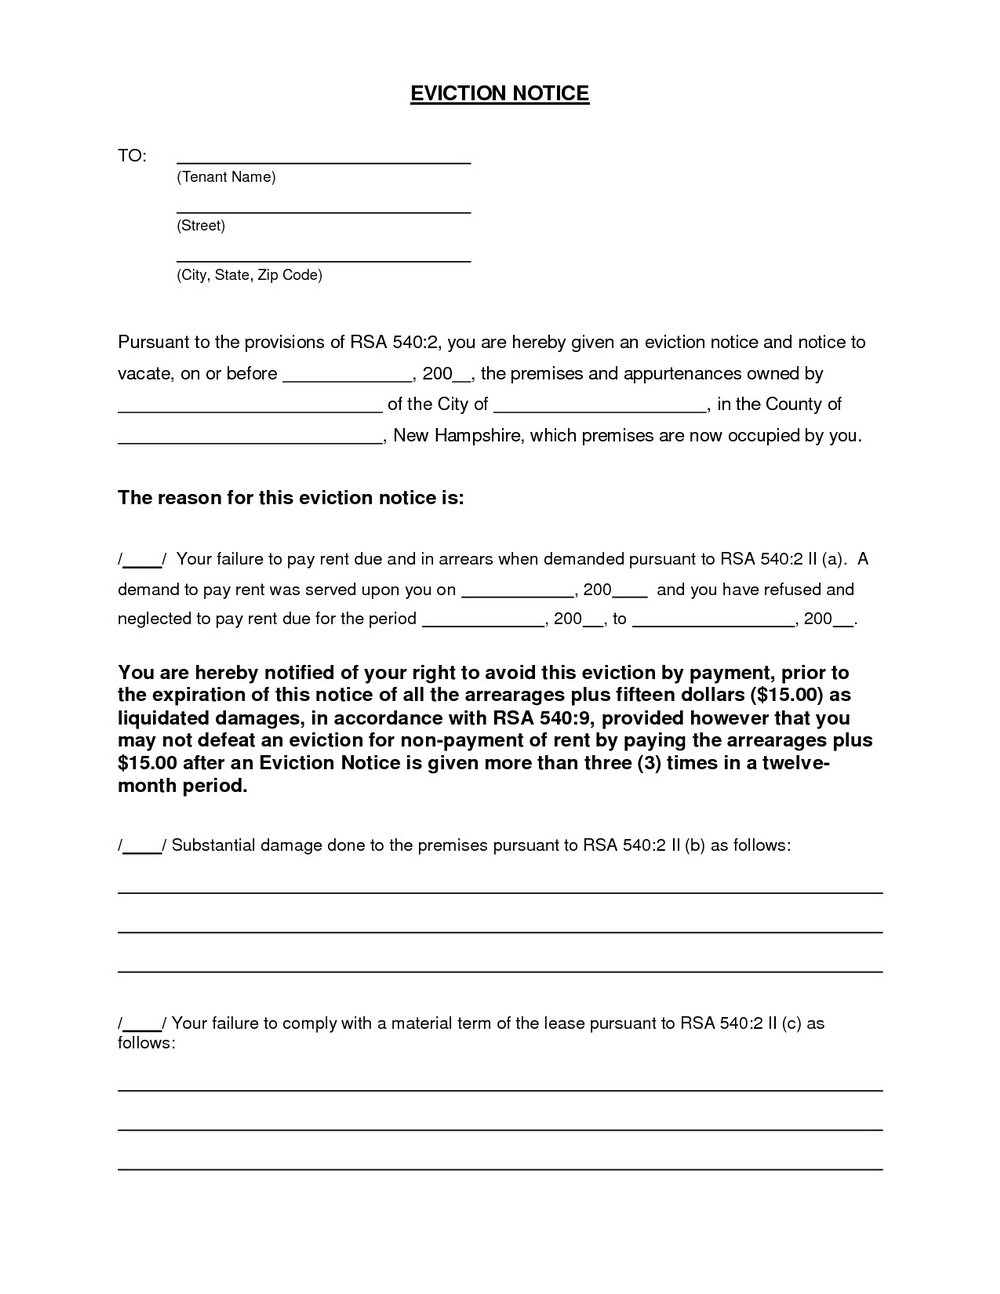 Florida Eviction Forms 3 Day Notice